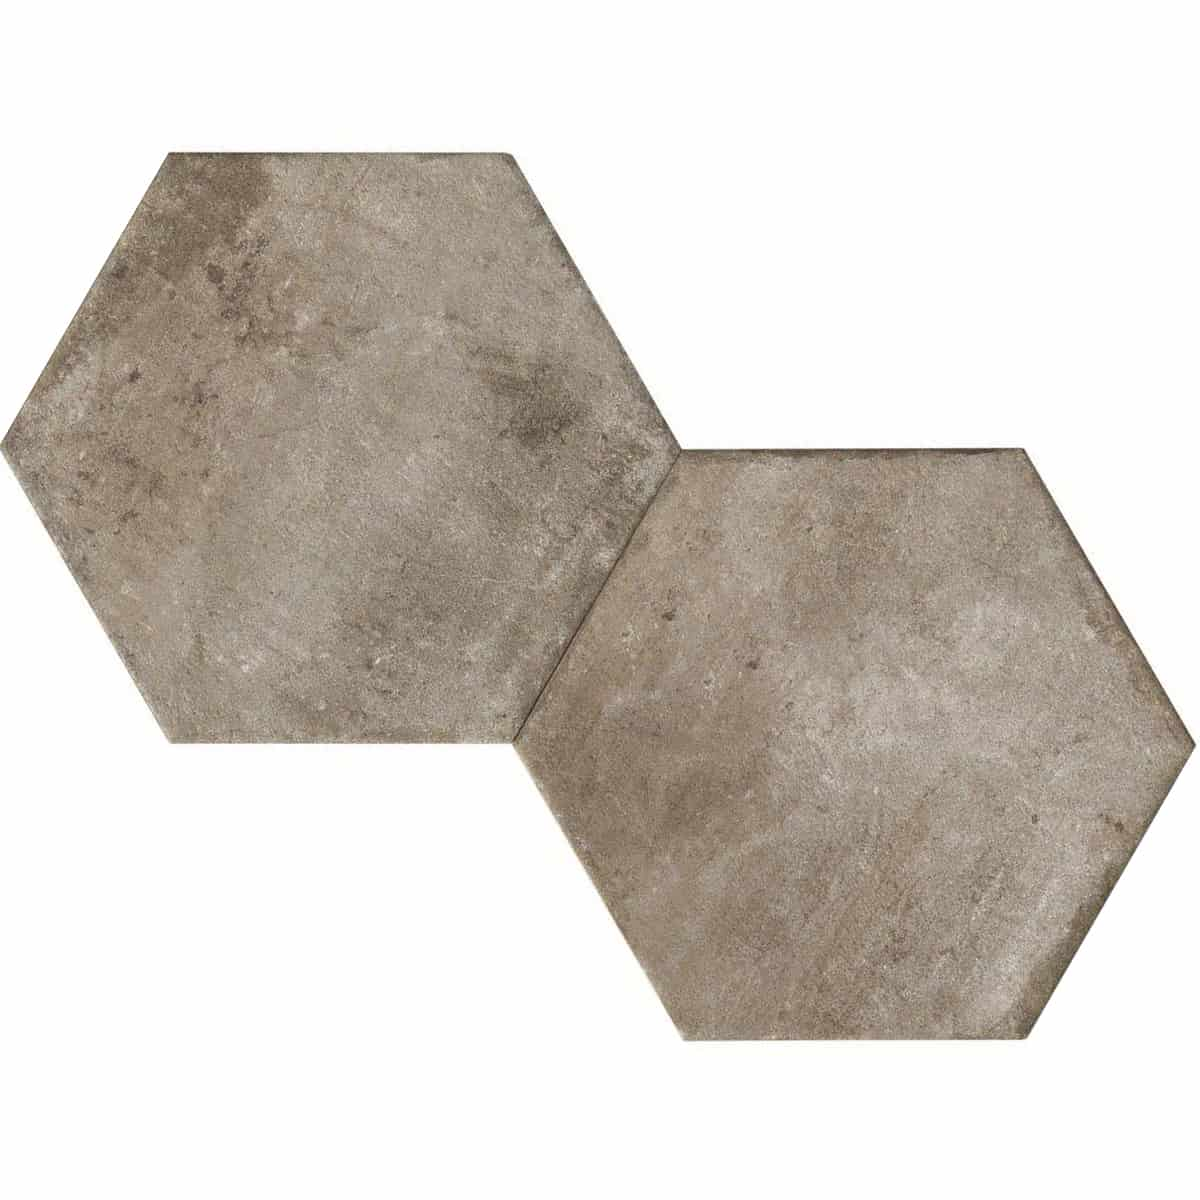 large format pattern hexagon tile 345x400mm Deco Heritage grey by Decobella tiles - South Africa Big format porcelain tiles from Italy and with up to 100 shades, this tile is ideal when considering a pattern hex tile with an authentic feel.Enjoy the quility of porcelain with great anti-slip properties but the look of clay or cement.